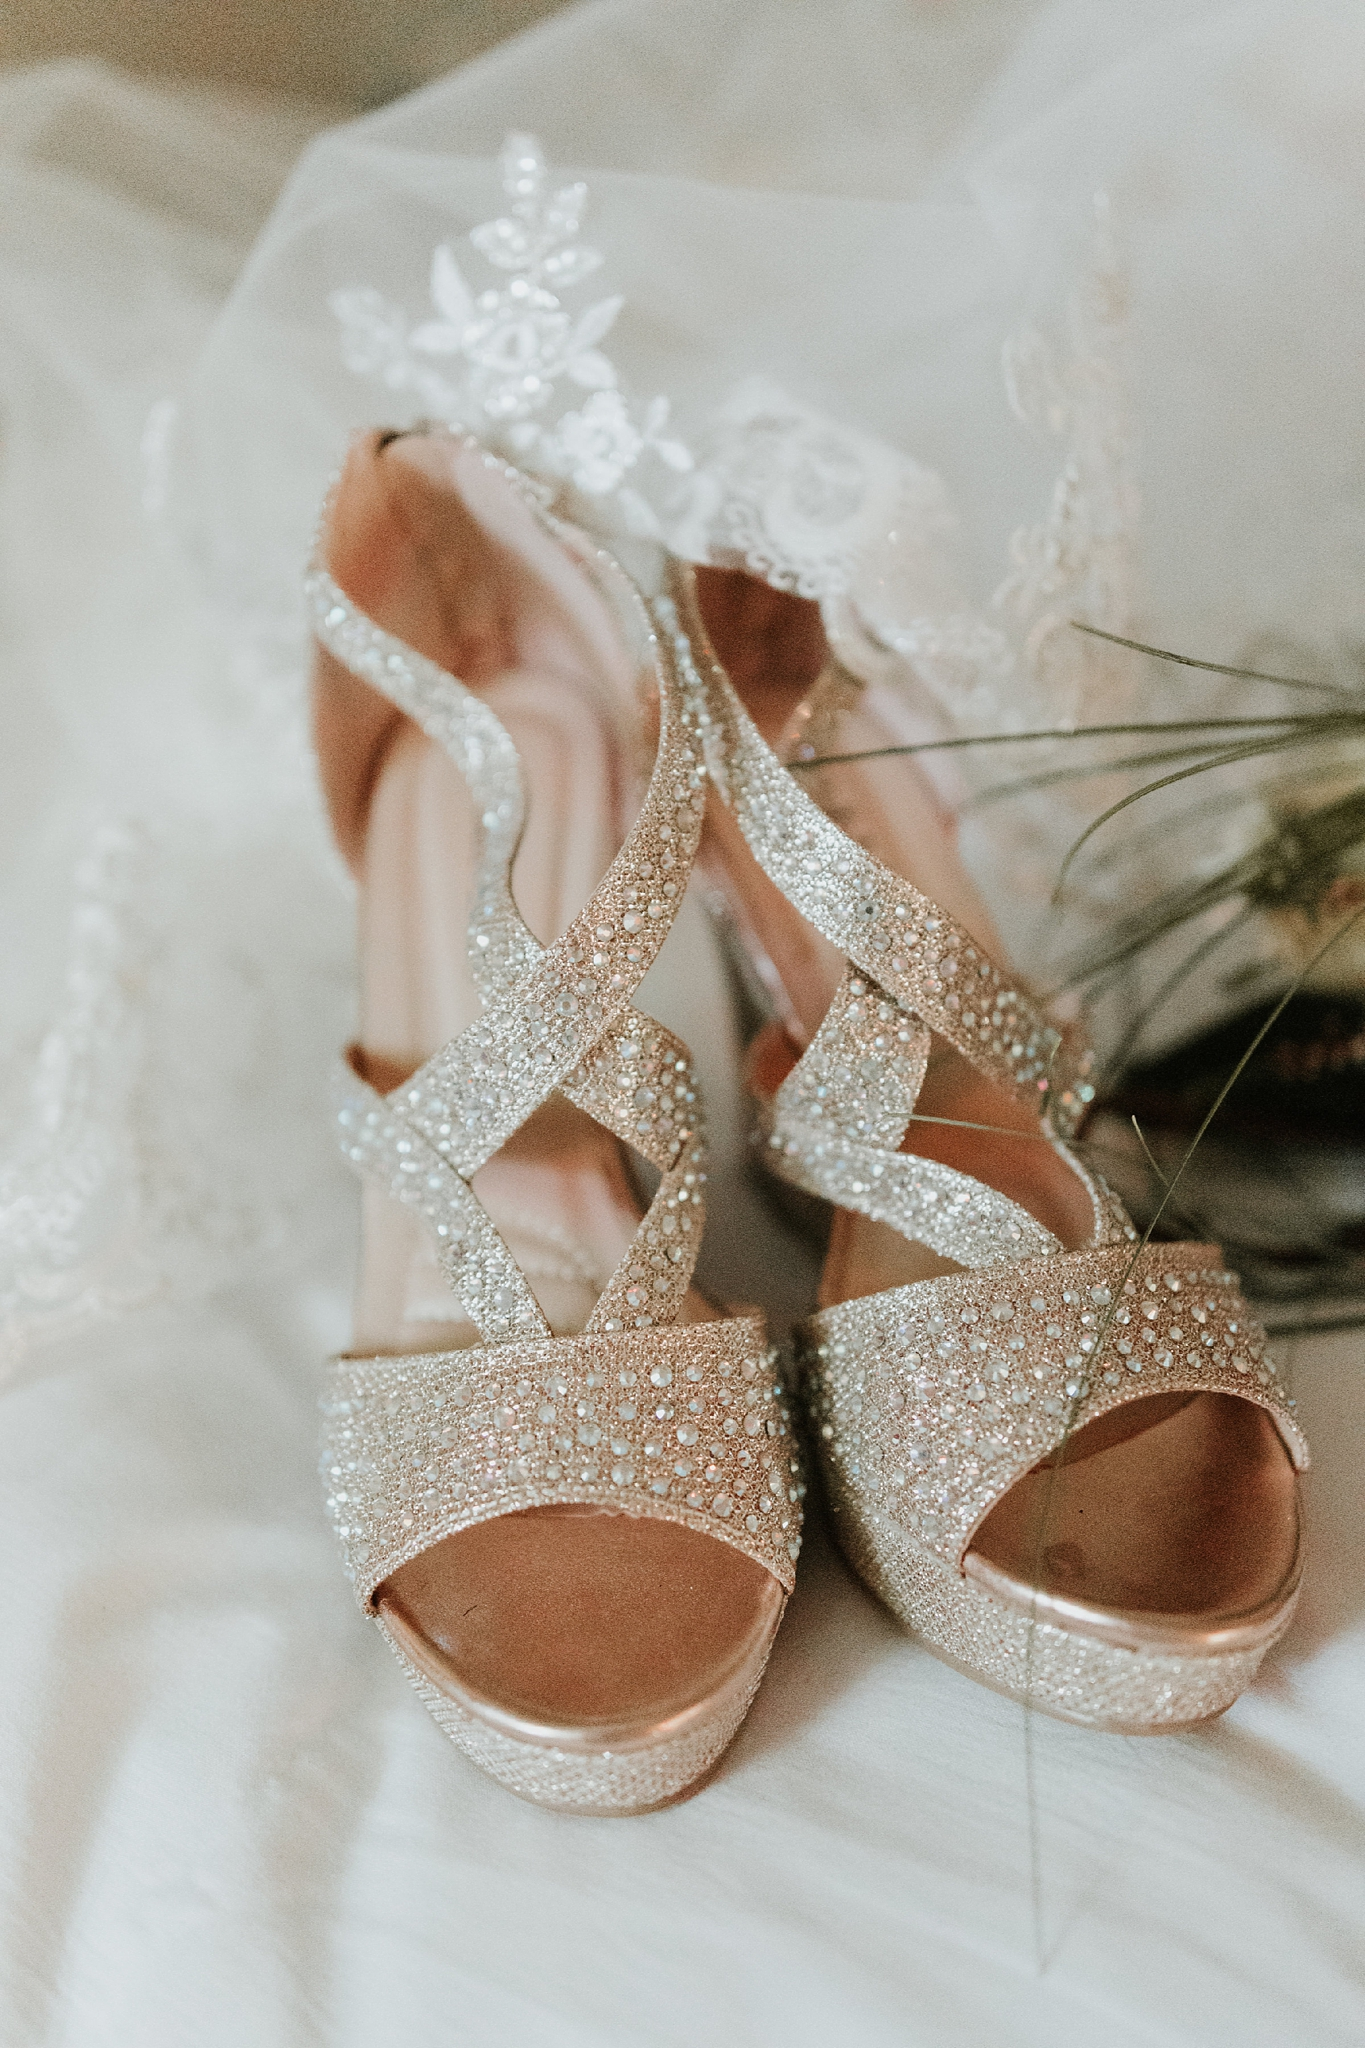 Alicia+lucia+photography+-+albuquerque+wedding+photographer+-+santa+fe+wedding+photography+-+new+mexico+wedding+photographer+-+new+mexico+wedding+-+new+mexico+wedding+-+colorado+wedding+-+bridal+shoes+-+bridal+inspo_0046.jpg